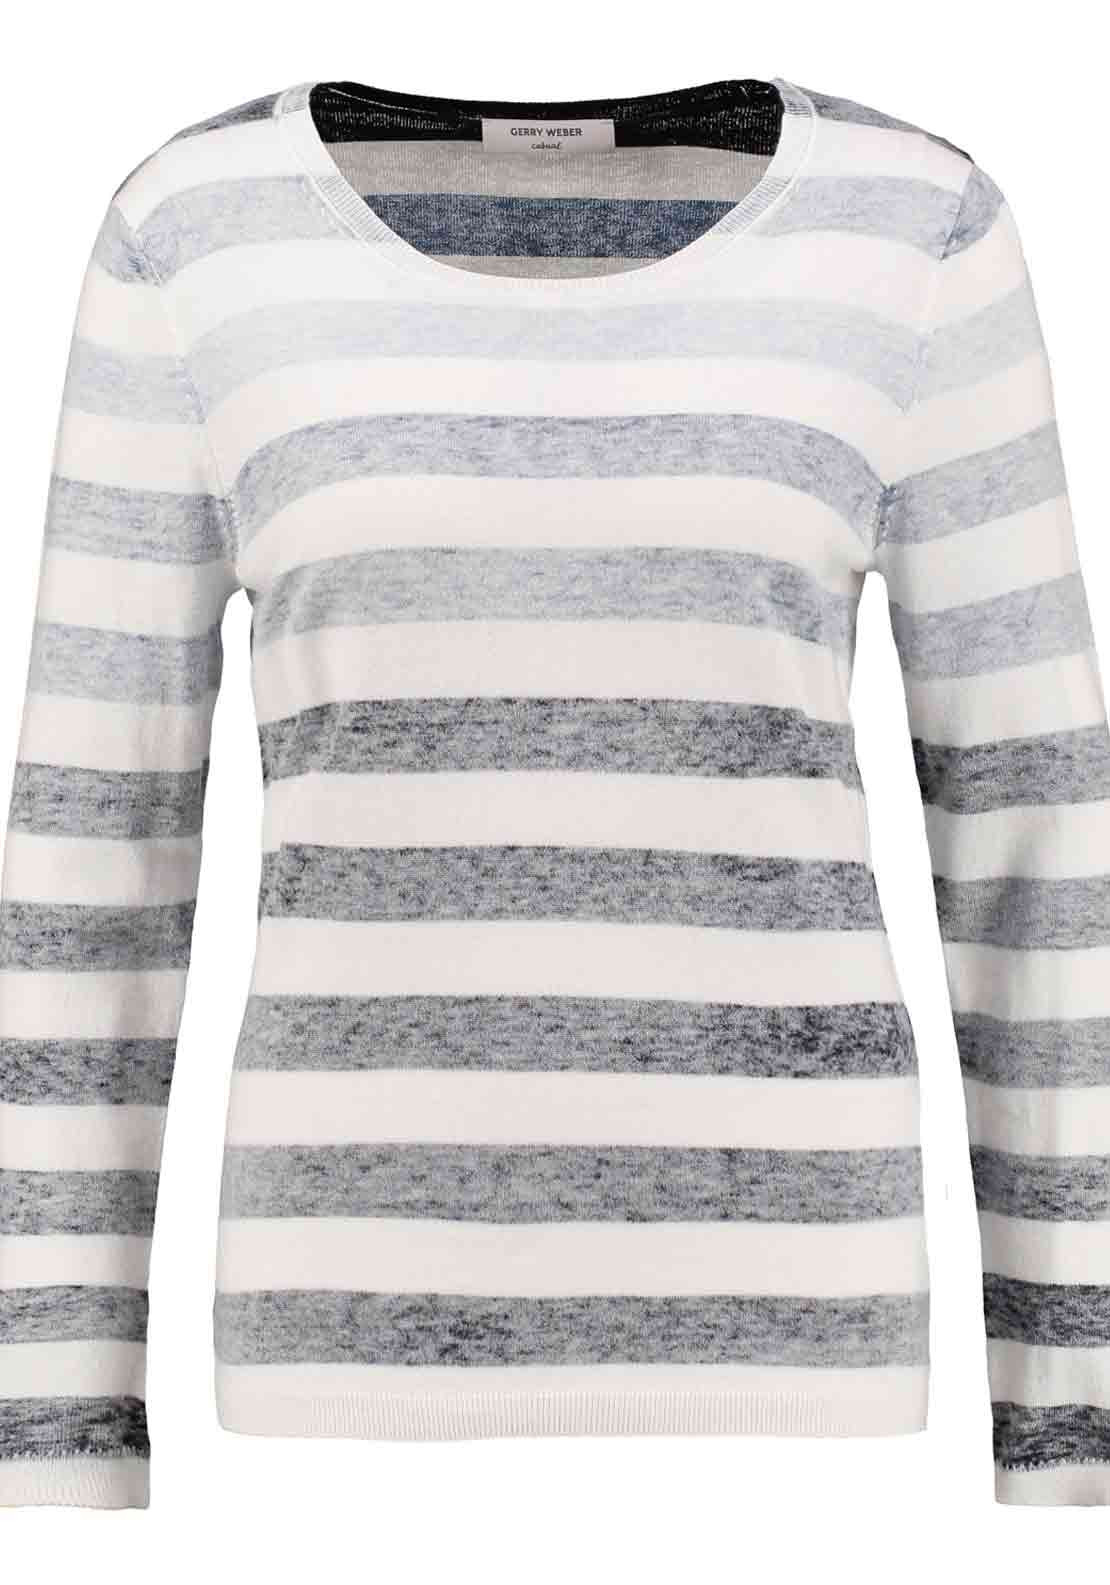 Gerry Weber Fade Effect Striped Sweater Jumper, White and Navy